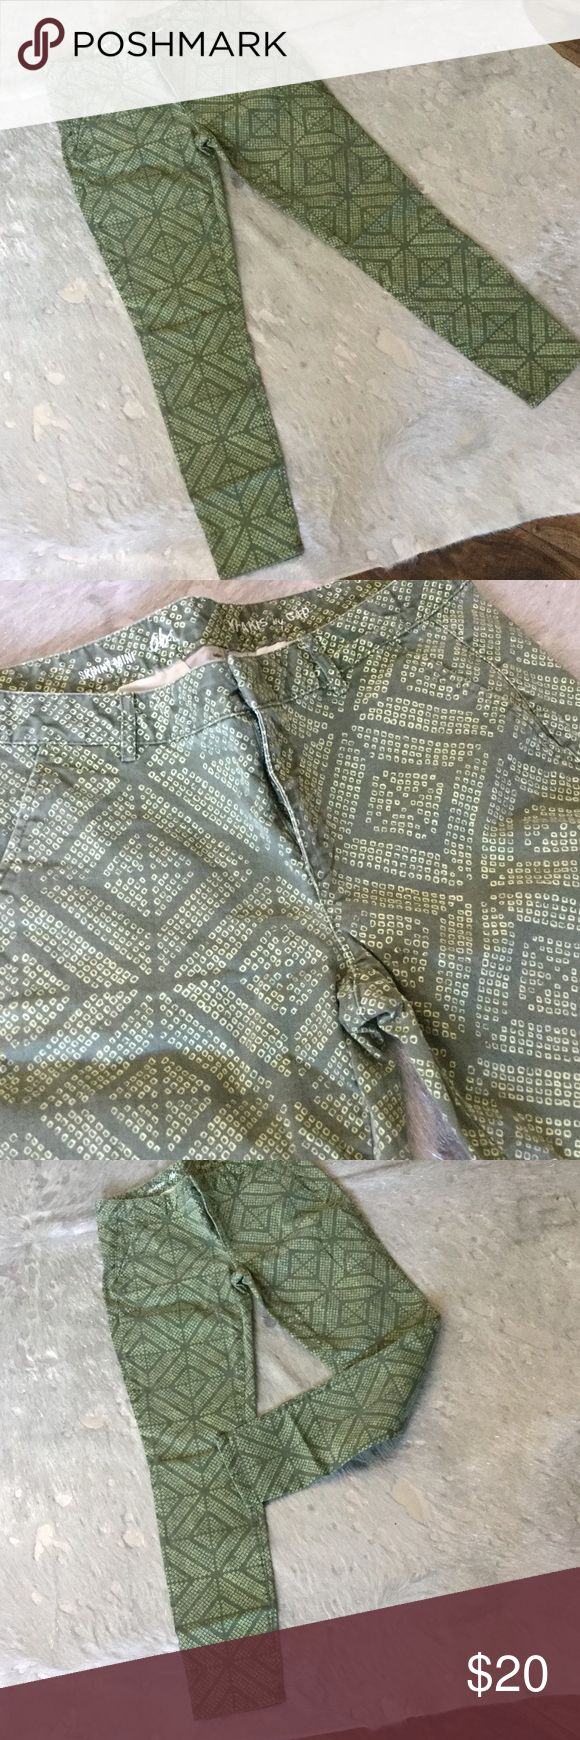 Colorful Tribal Print Skinny Khaki Jeans Green and Yellow Tribal Print Khaki Skinny Jeans.  Comfy and super cute. Great for casual day at work or weekend excursions. Cotton and Spandex blend so there is a stretchiness to the pants. GAP Jeans Skinny